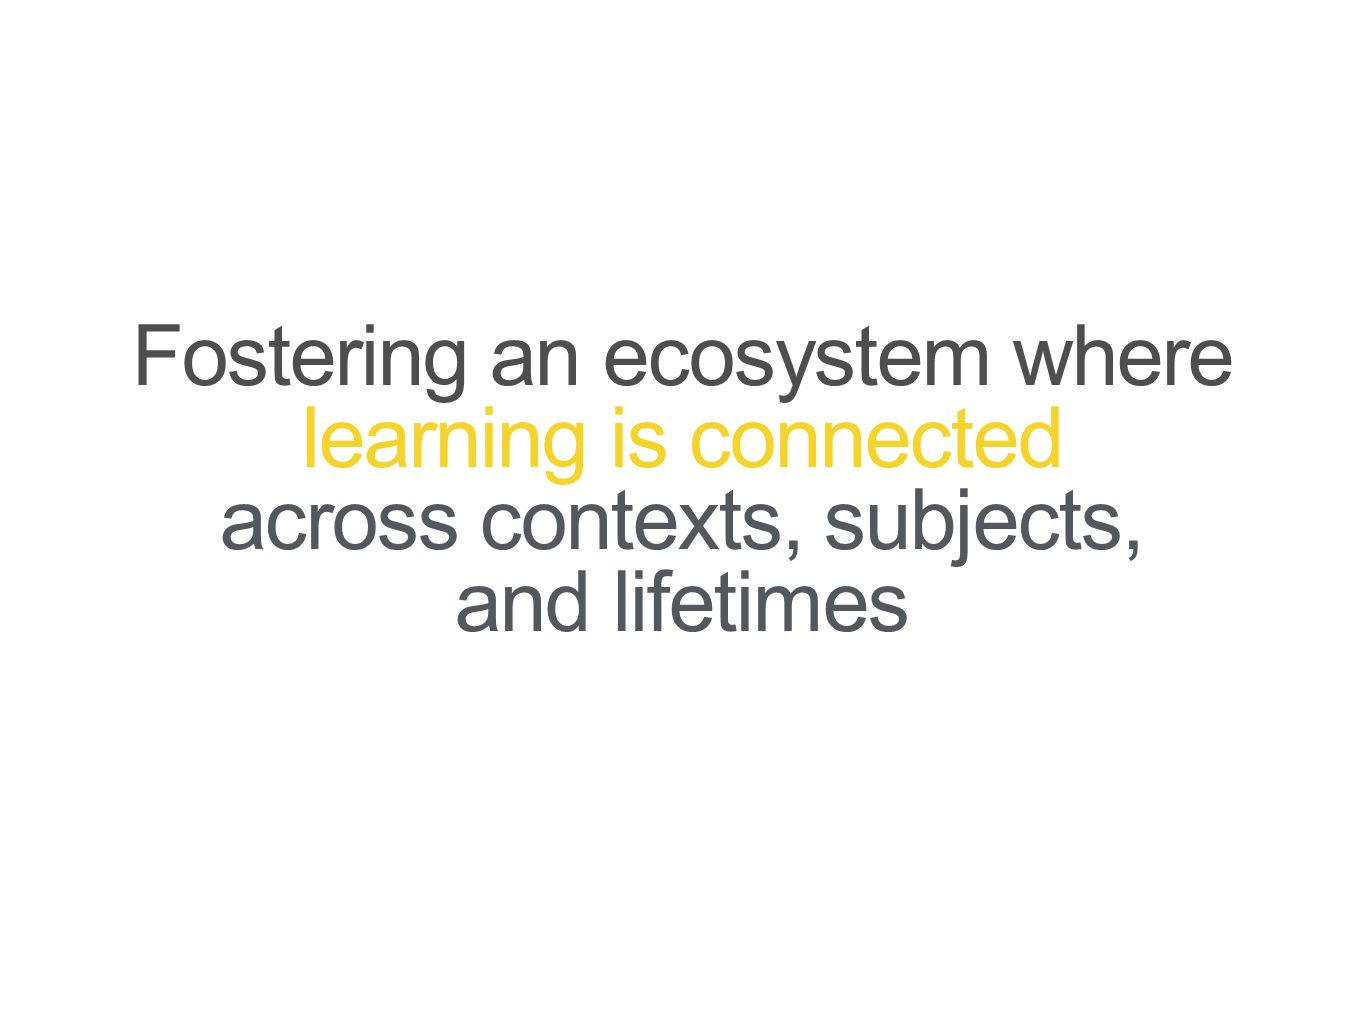 Fostering an ecosystem where learning is connected across contexts, subjects, and lifetimes